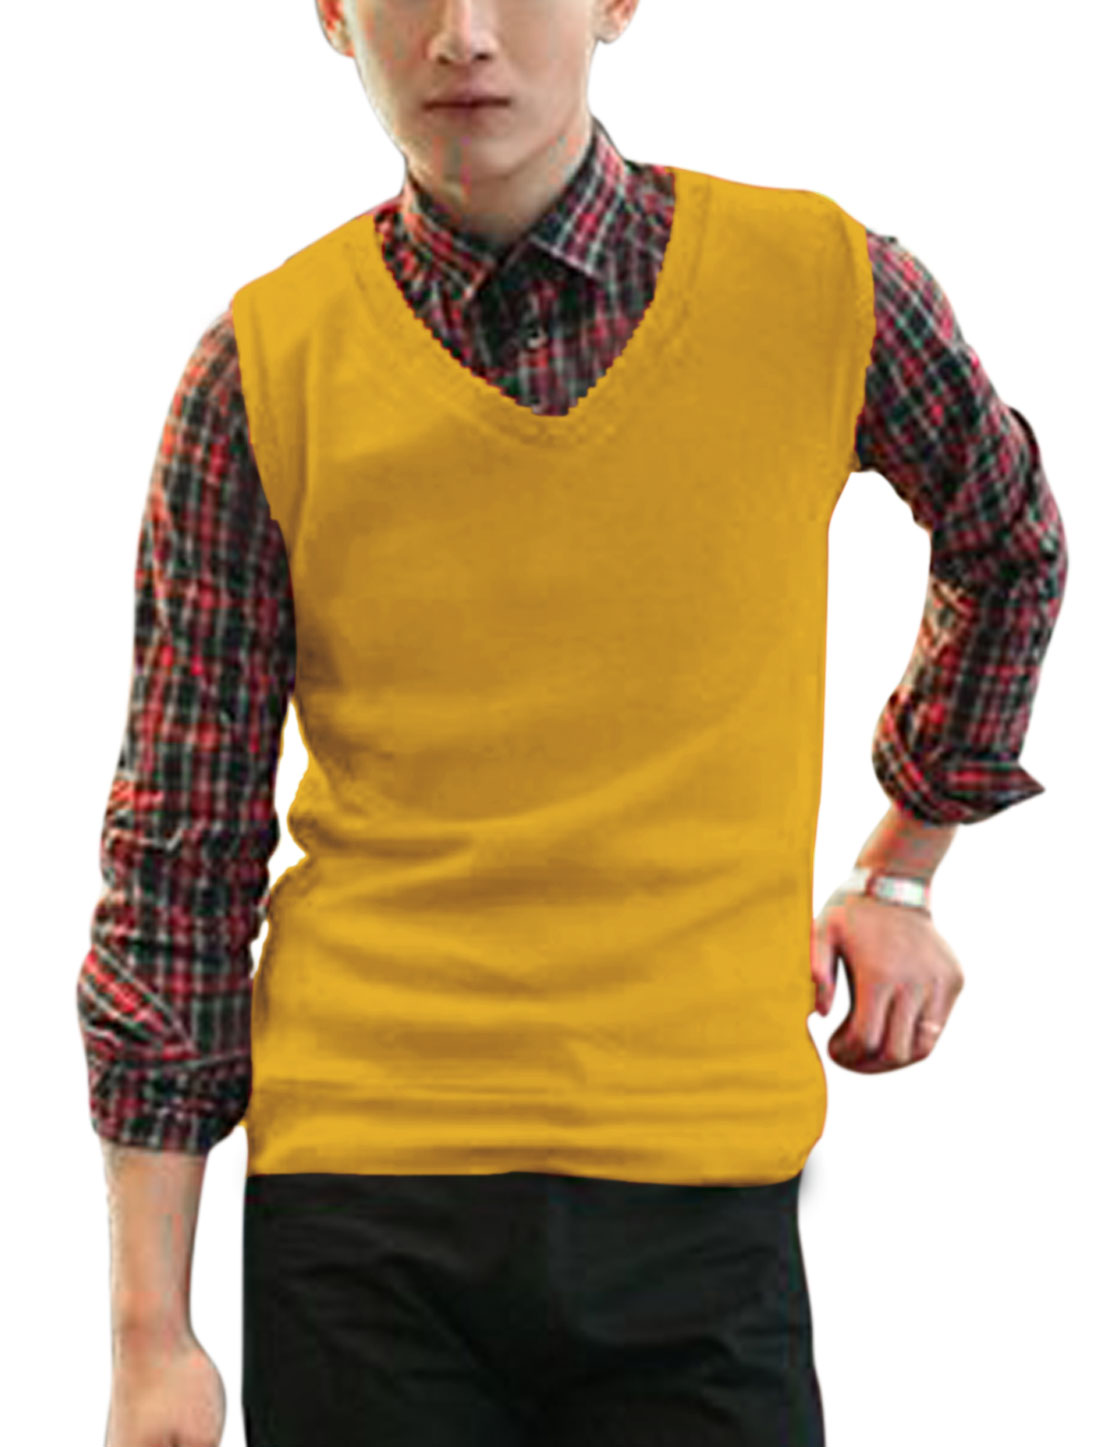 Slim Fit V Neck Fashionable Casual Knit Vests for Men Yellow M